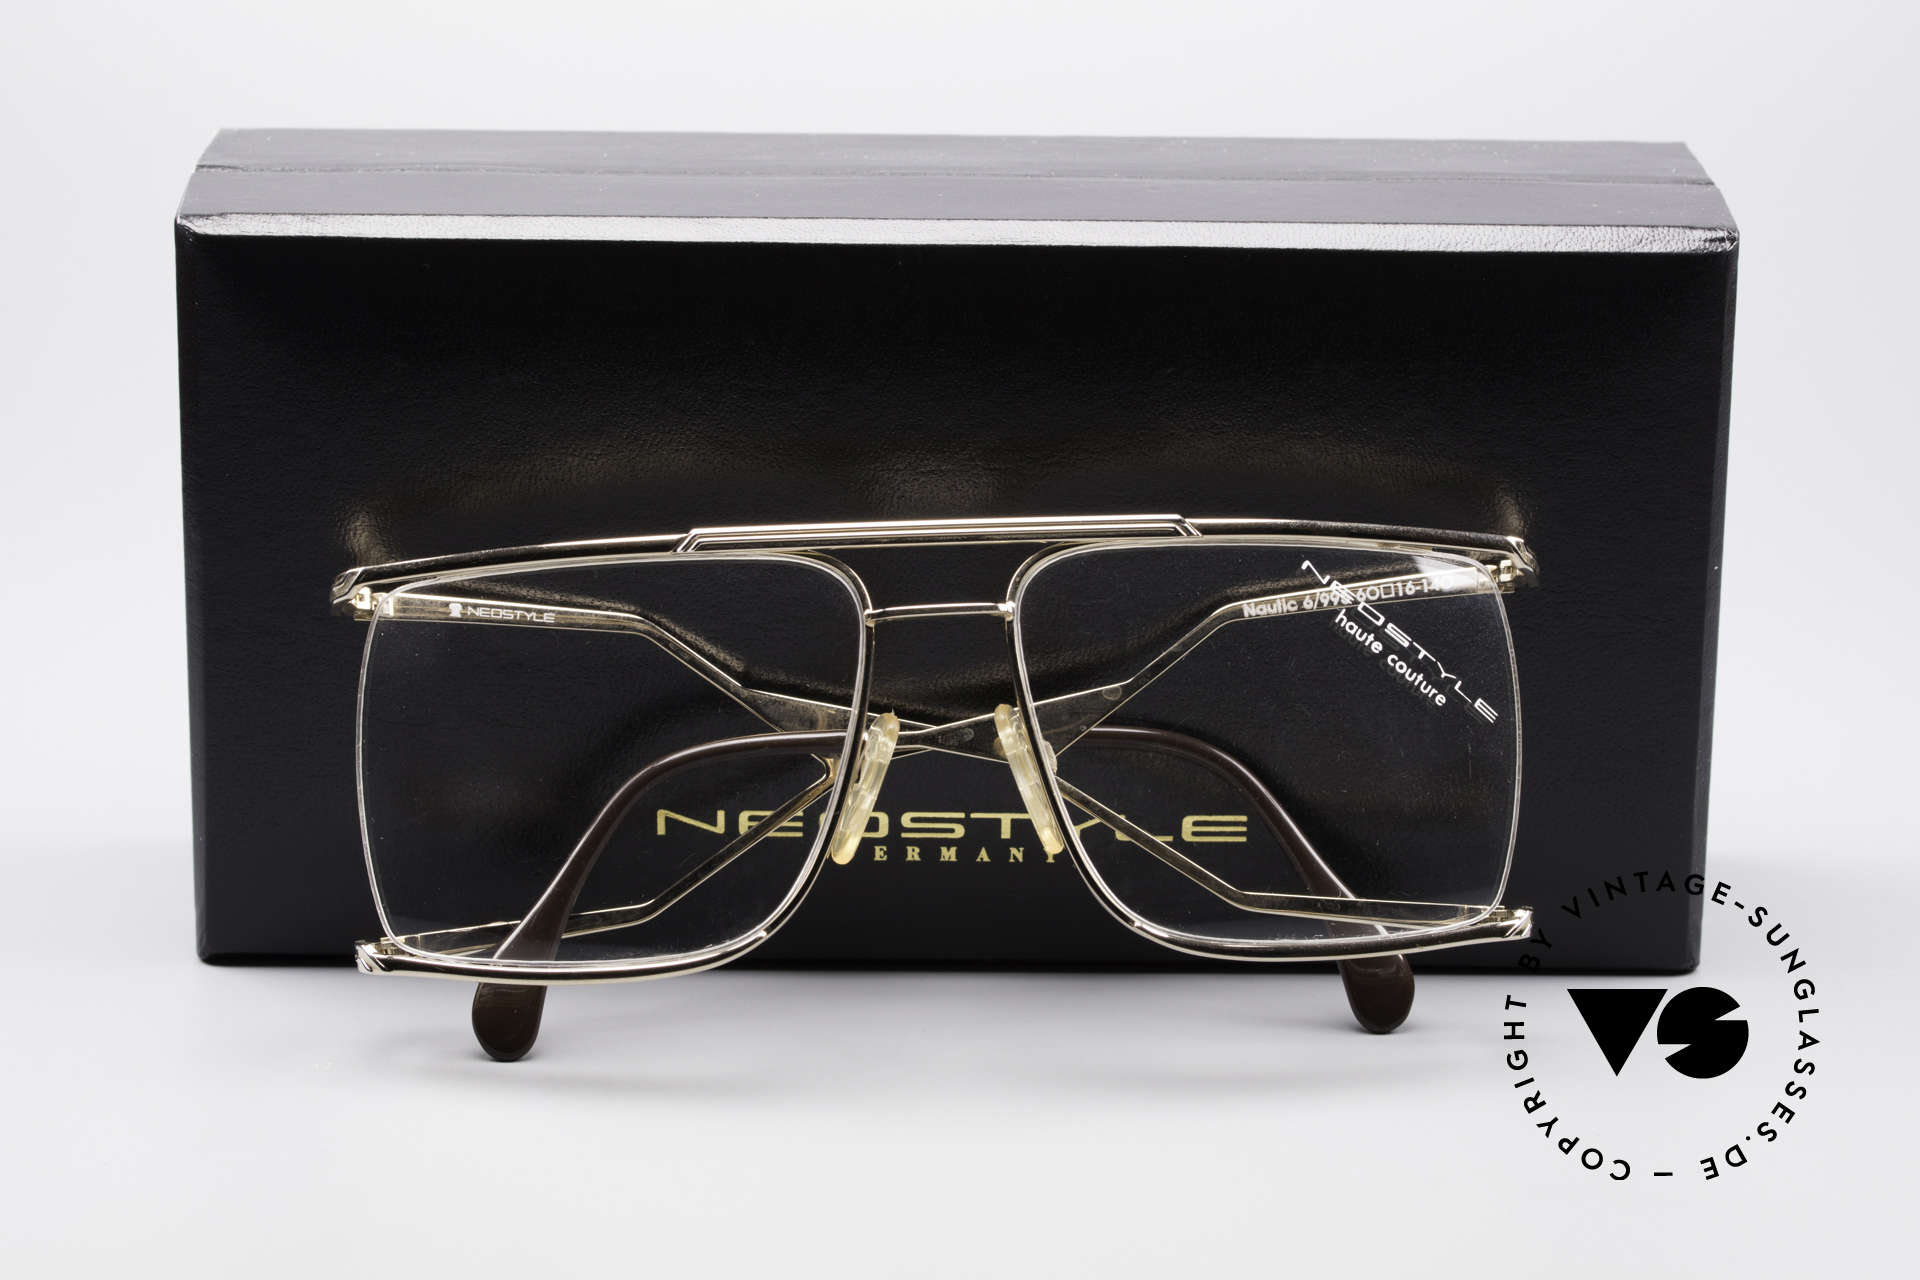 Neostyle Nautic 6 80's Miami Vice Eyeglasses, unworn (incl. original Neostyle box), collector's item, Made for Men